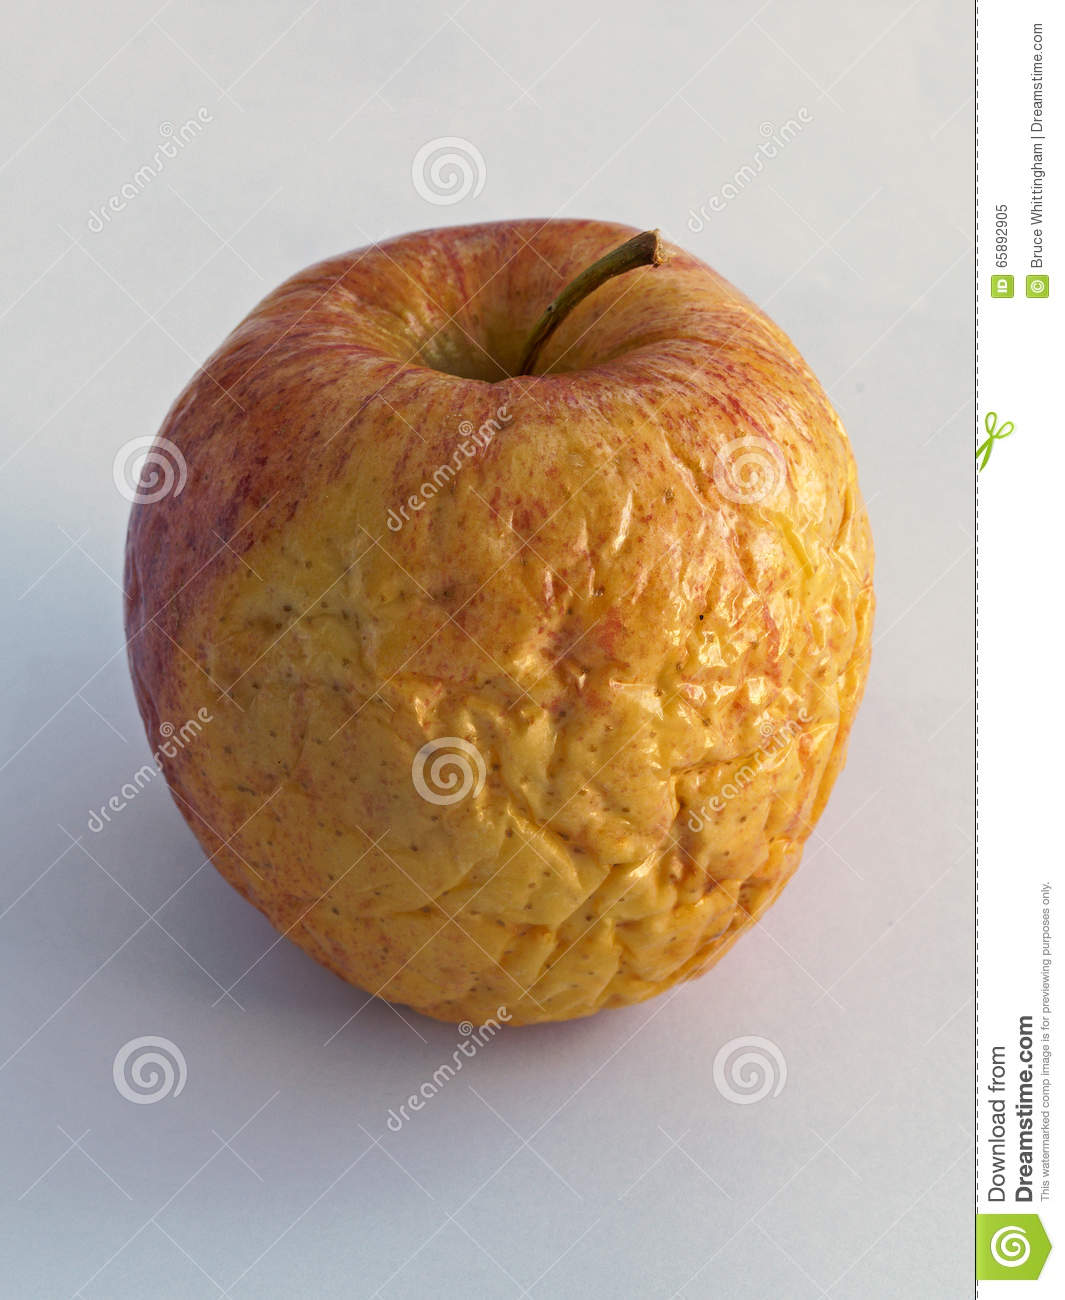 Shriveled Apple Stock Photo.